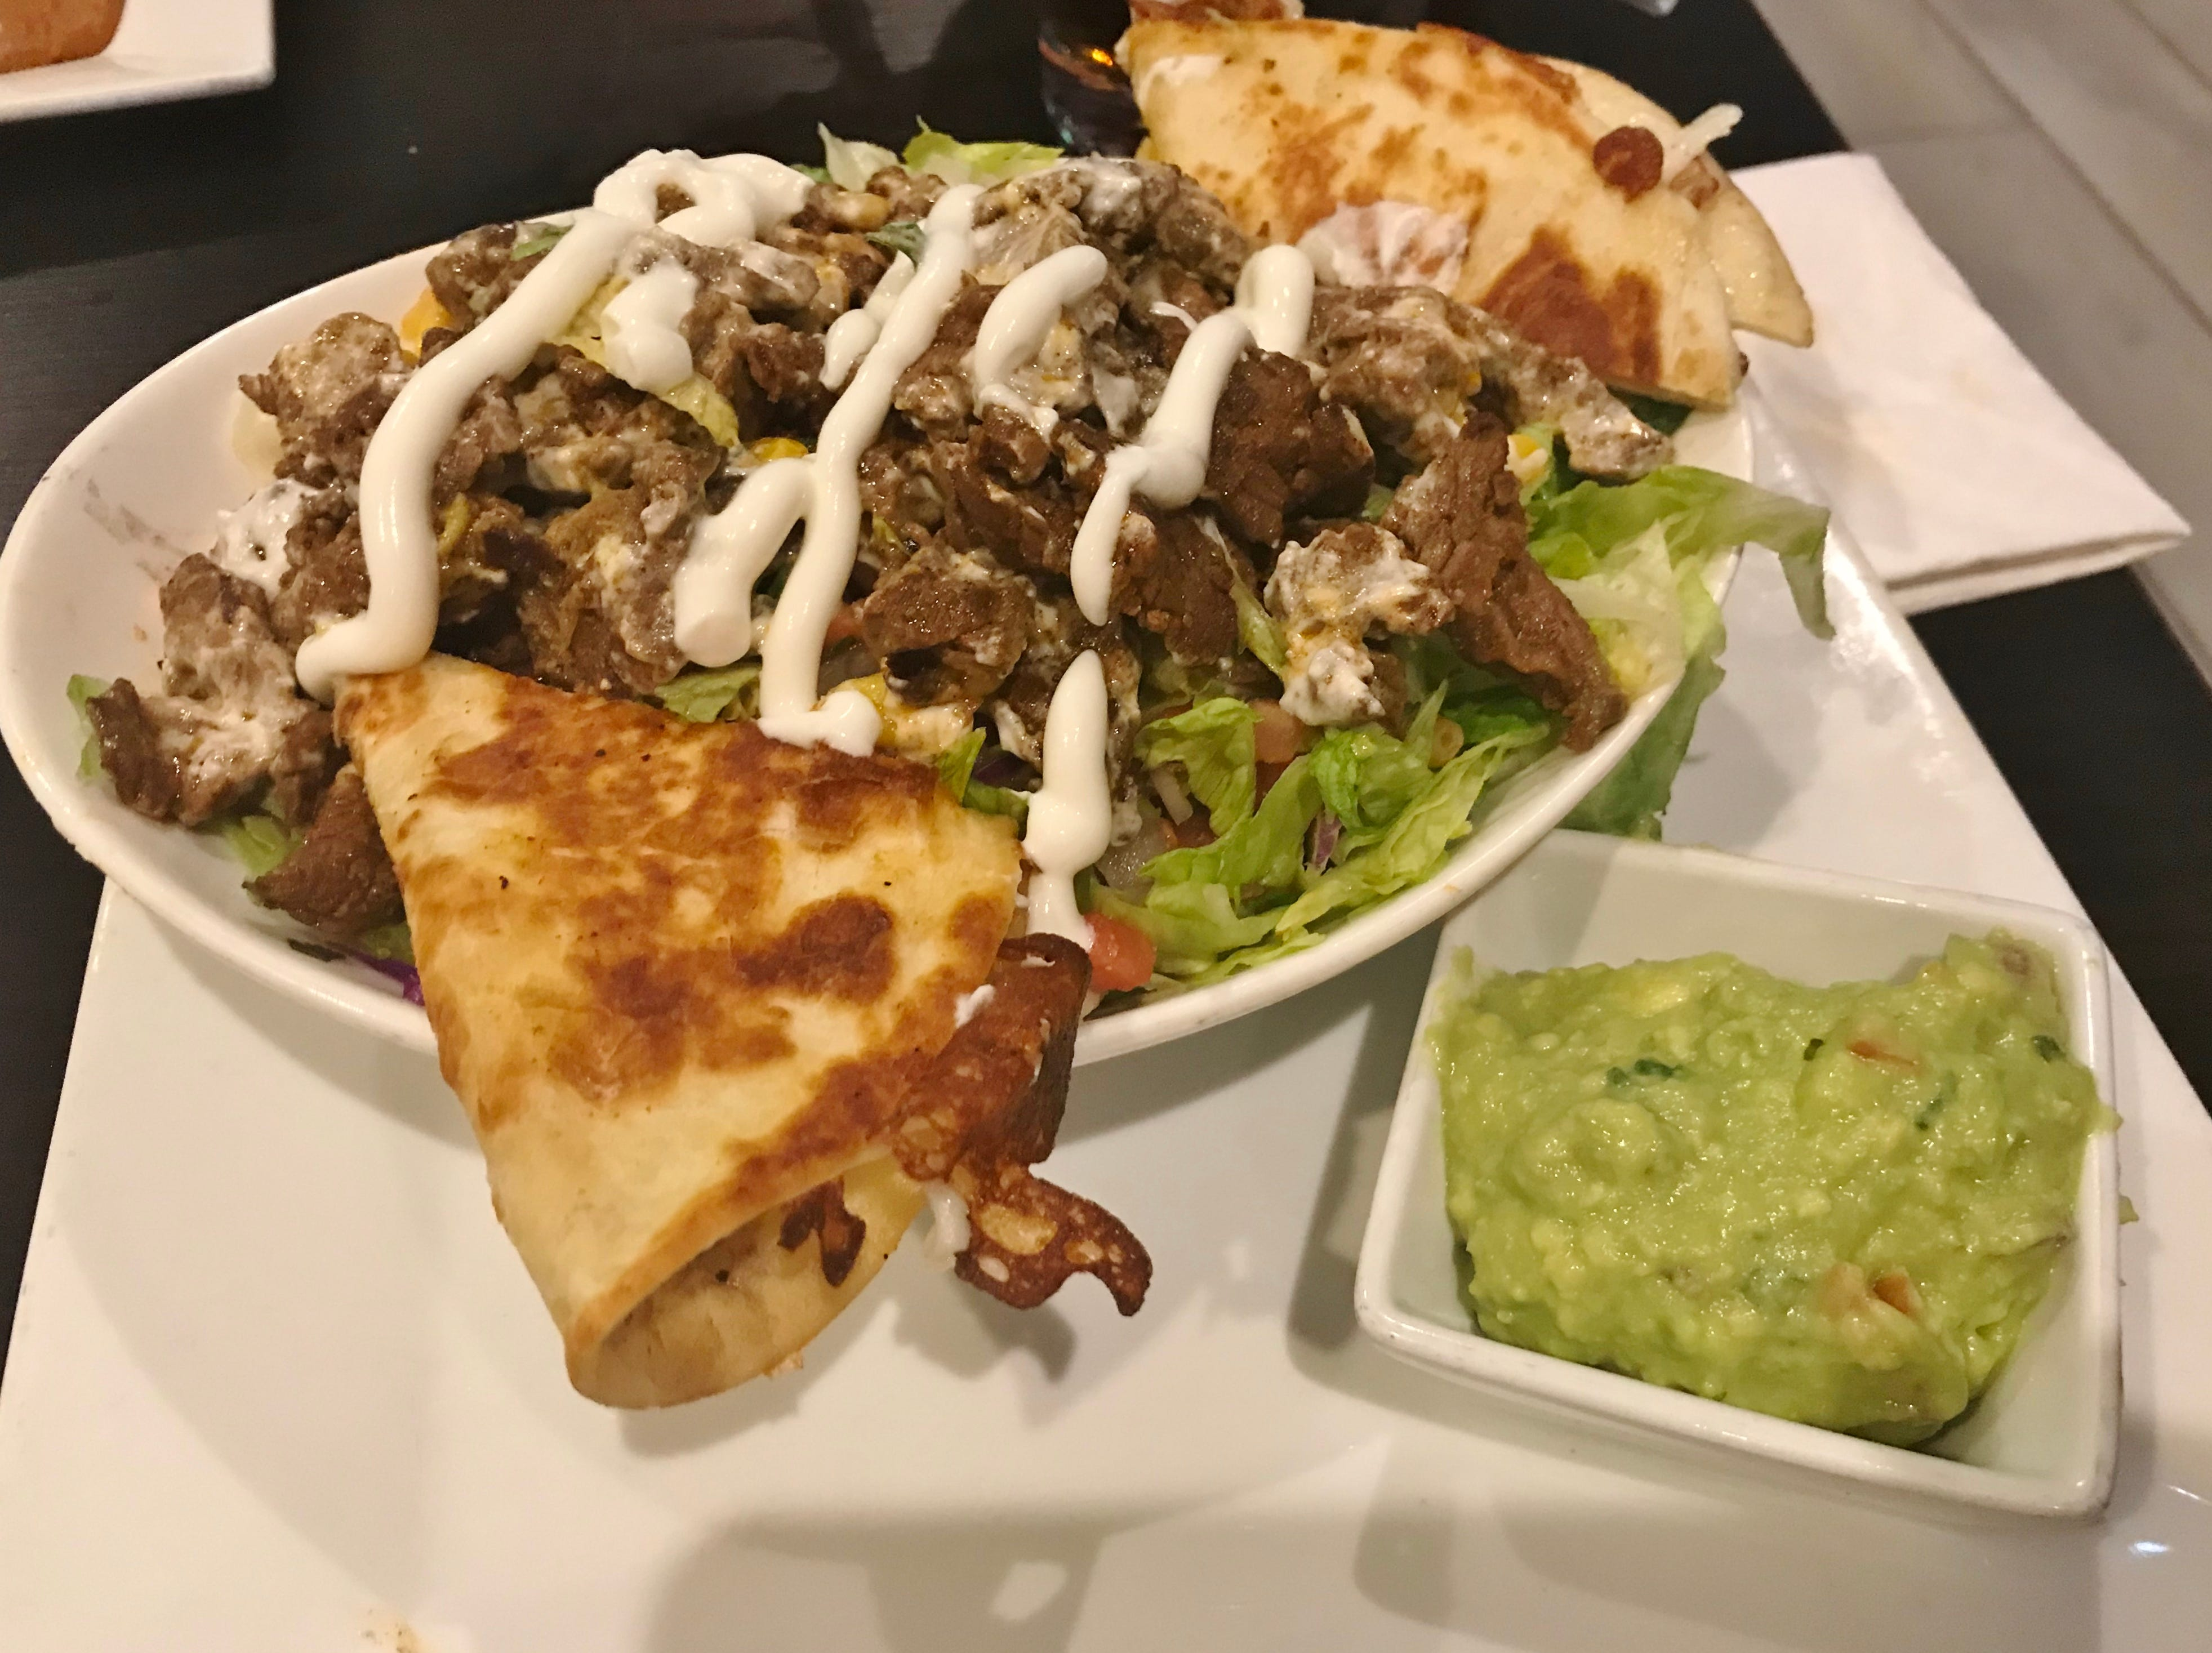 Casa Amigos Bowl was served with tender, flavorful steak and cheese quesadillas.